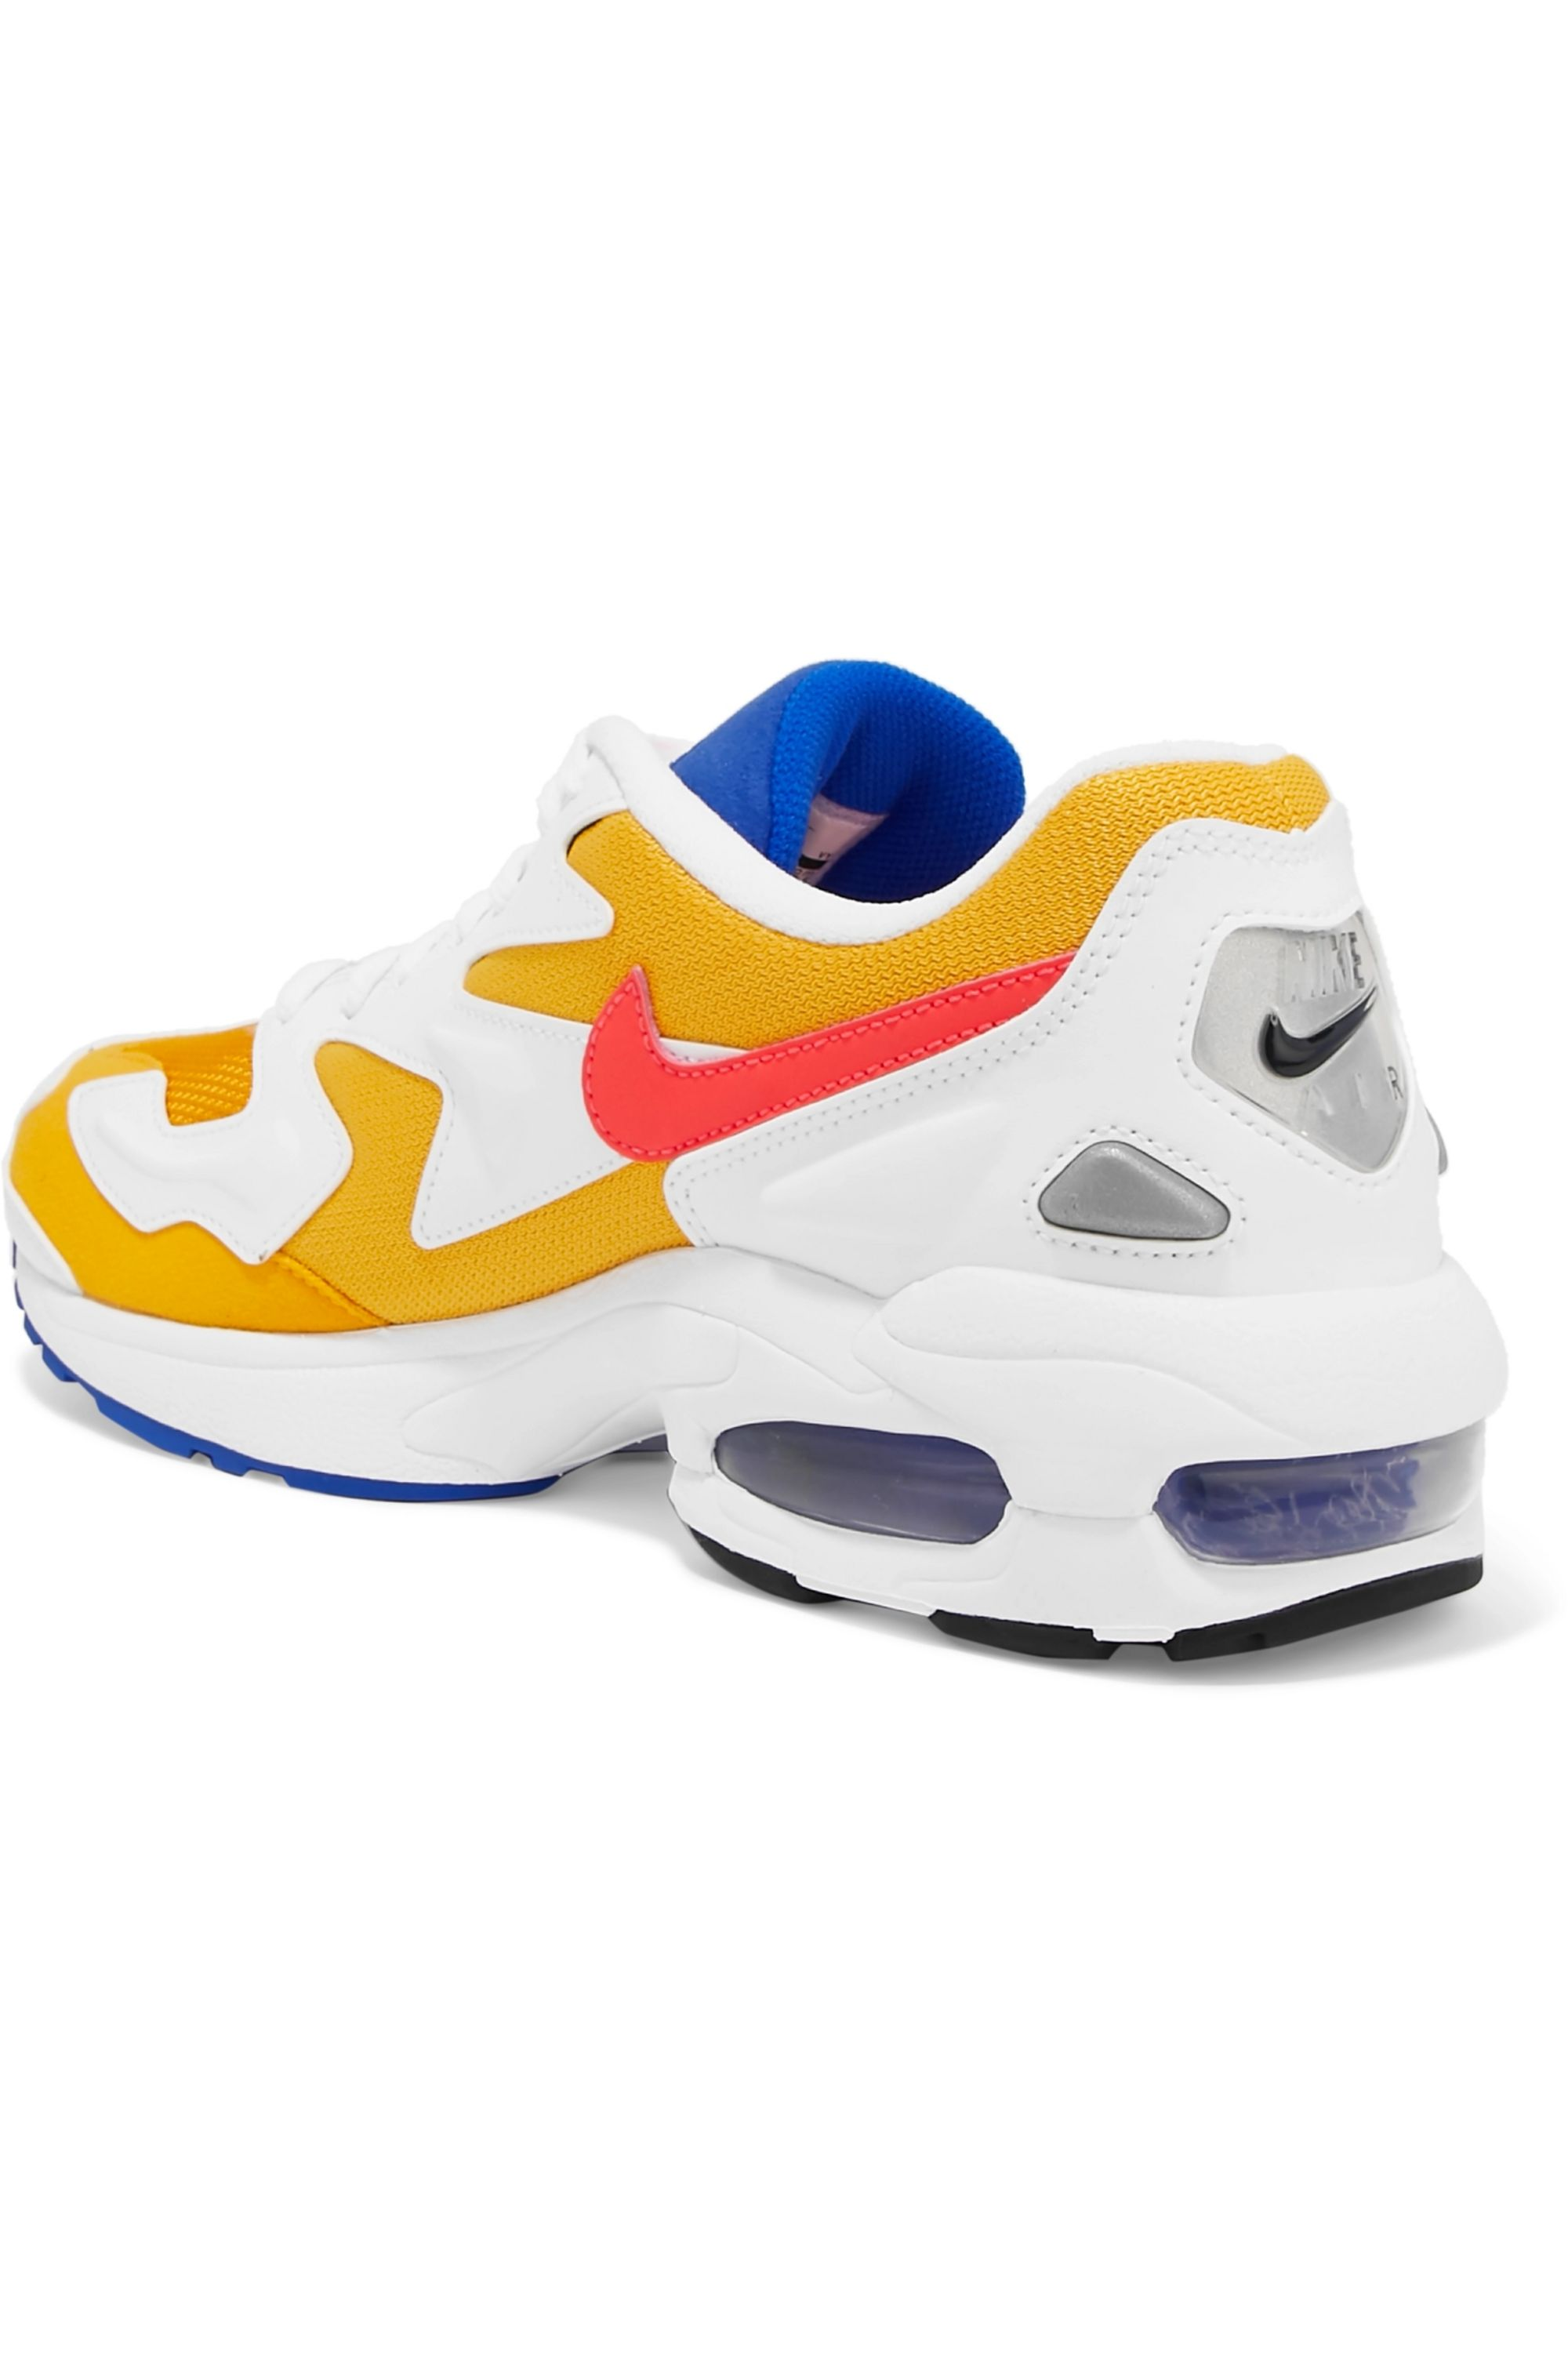 Nike Air Max 2 Light faux leather, suede and mesh sneakers